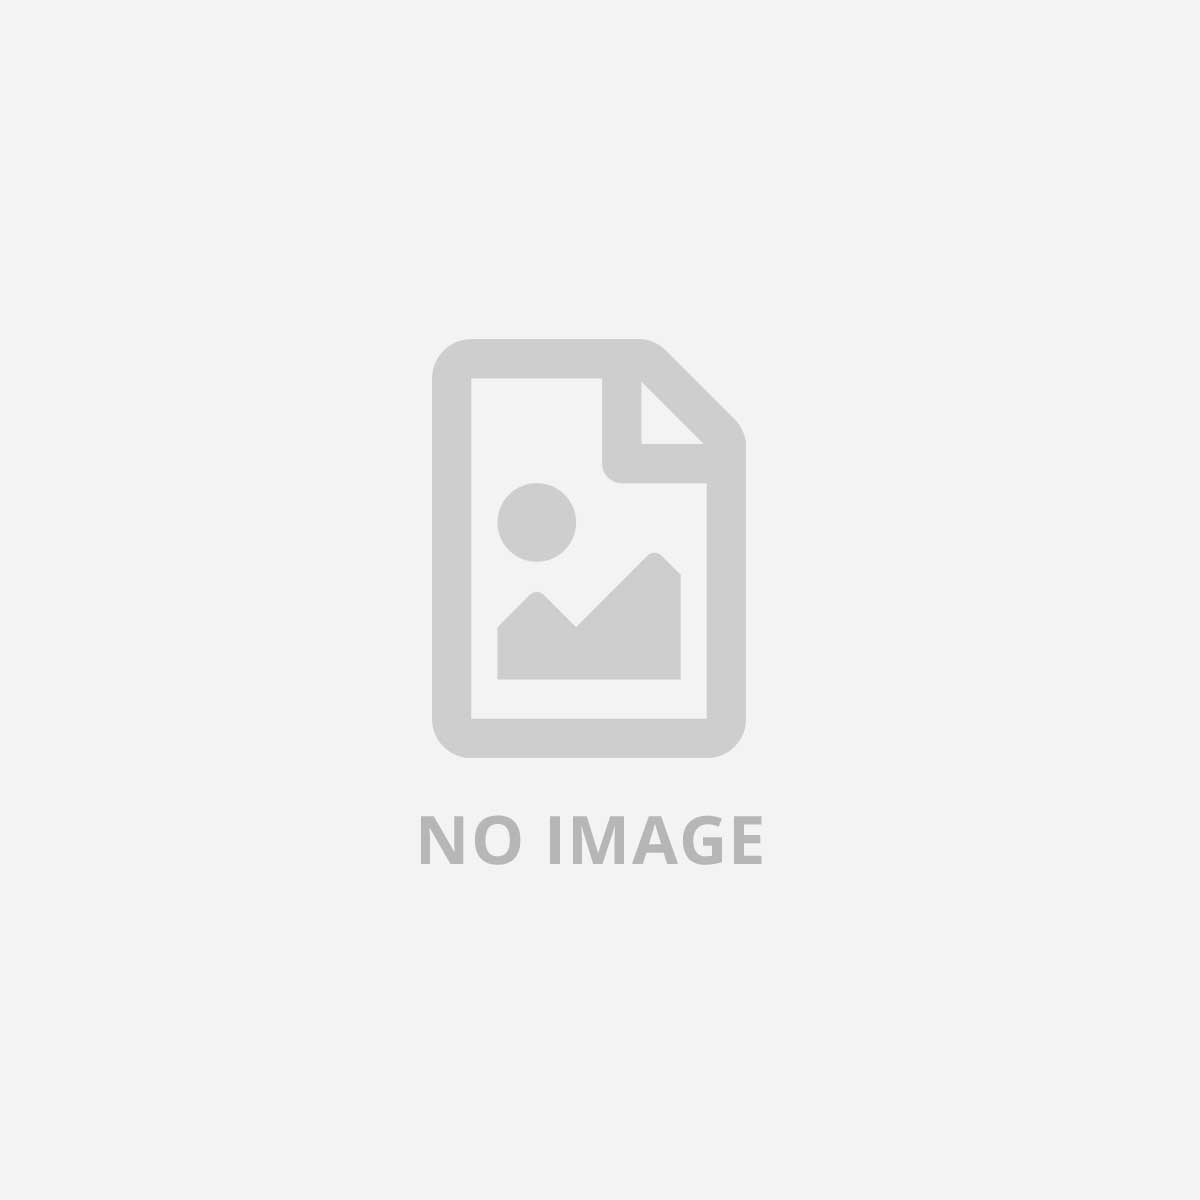 BLACK AND DECKER BLACK DECKER PISTOLA TERMICA